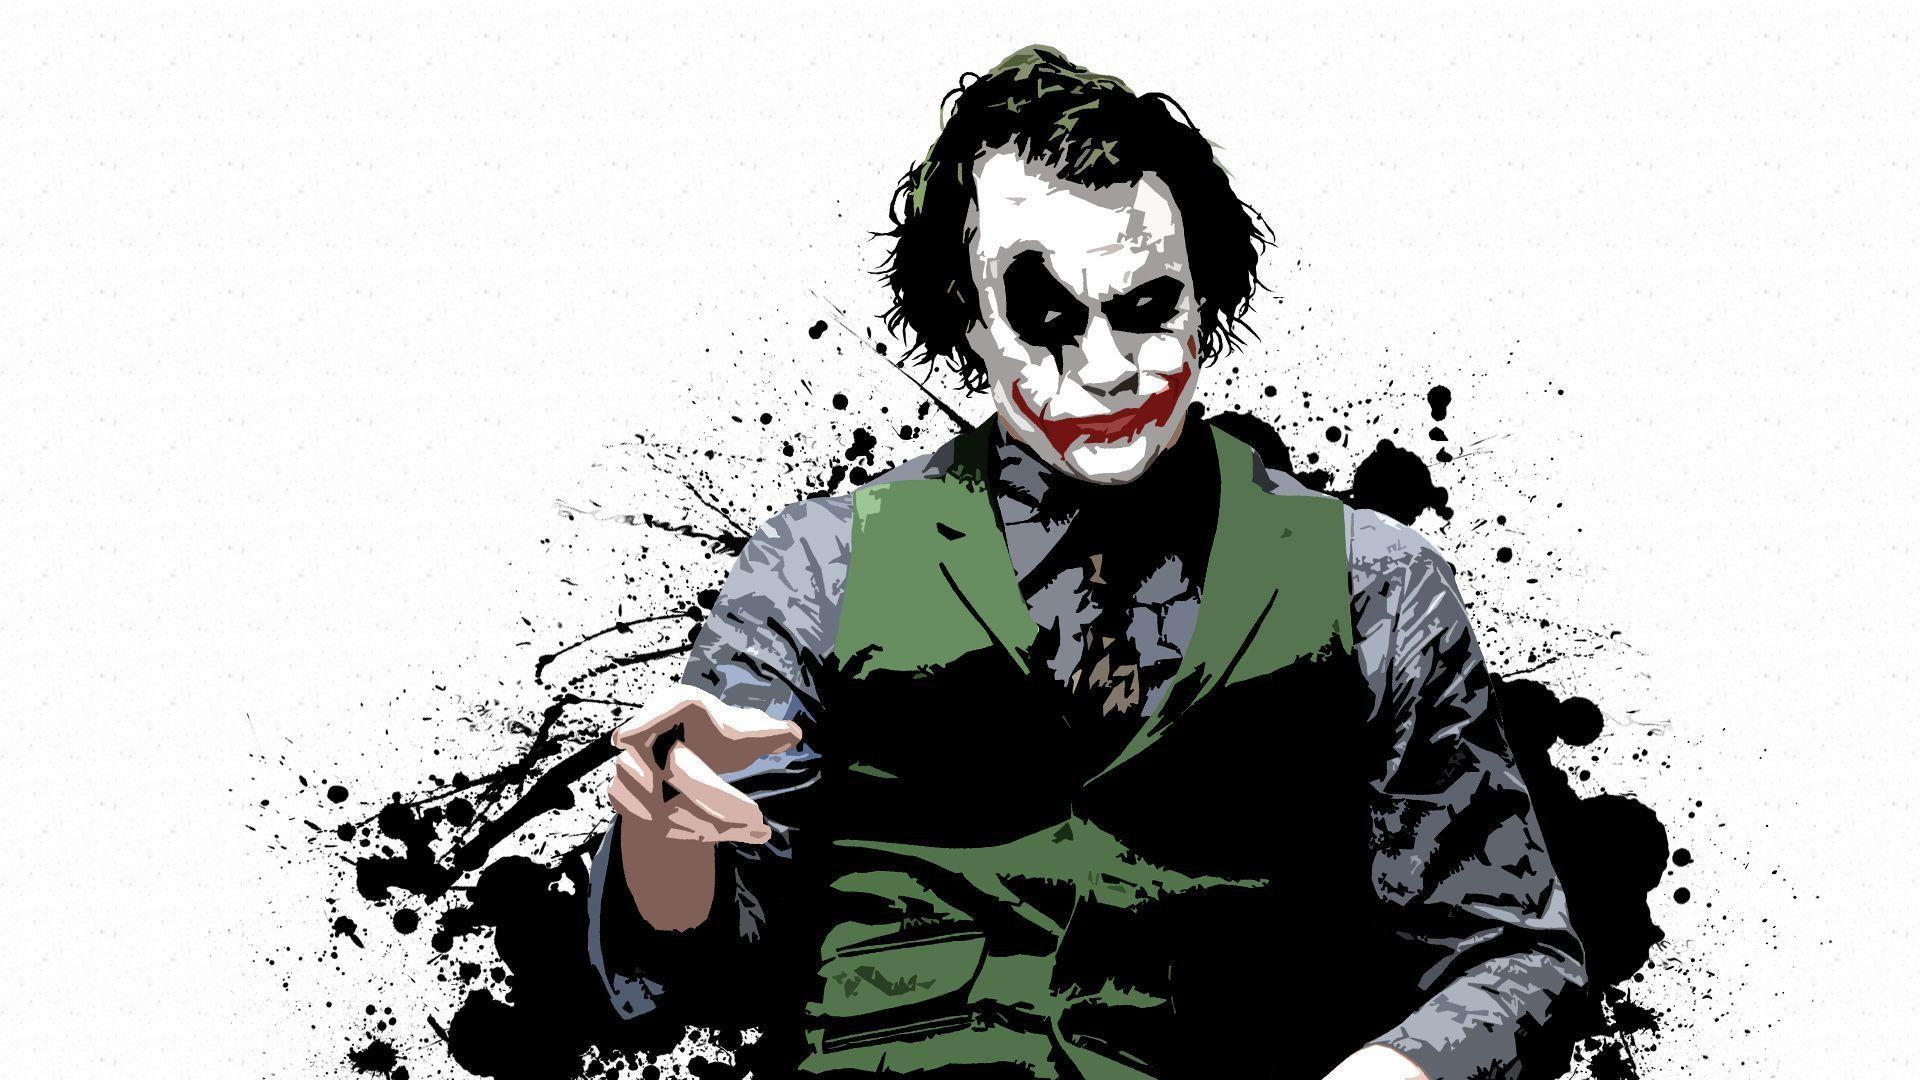 Joker hd wallpapers 1080p